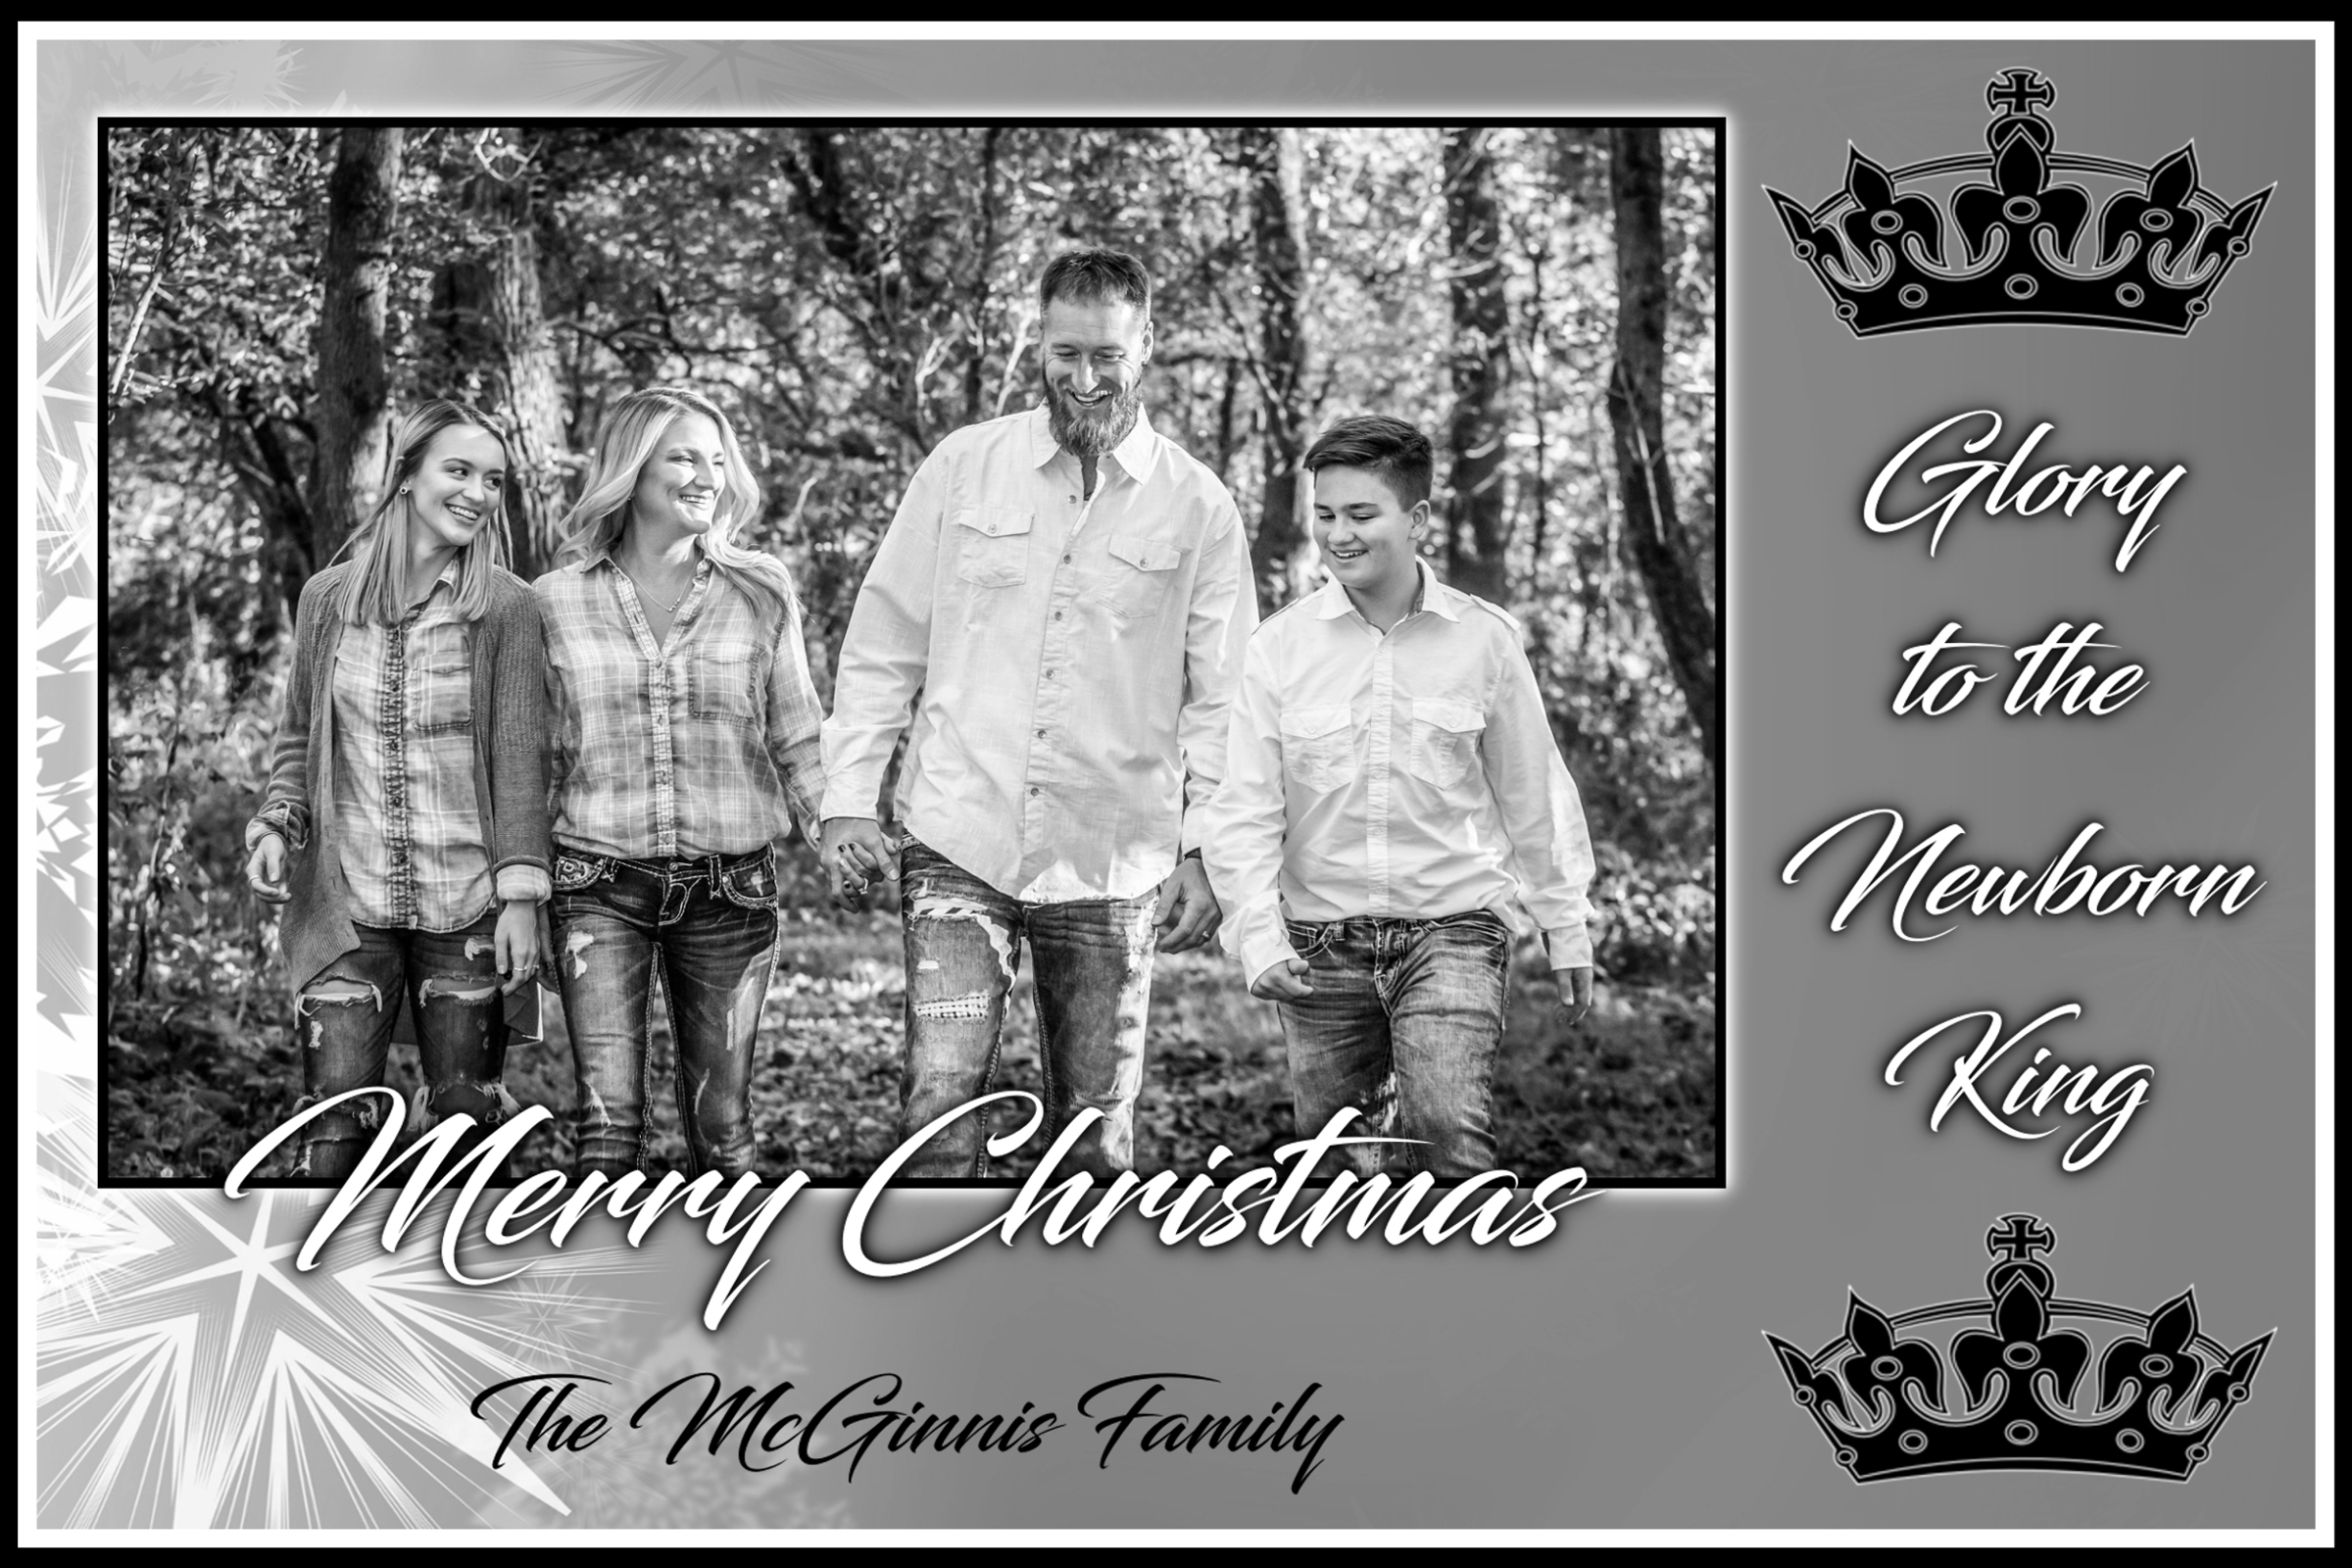 MCGINNIS CHRISTMAS CARD.jpg